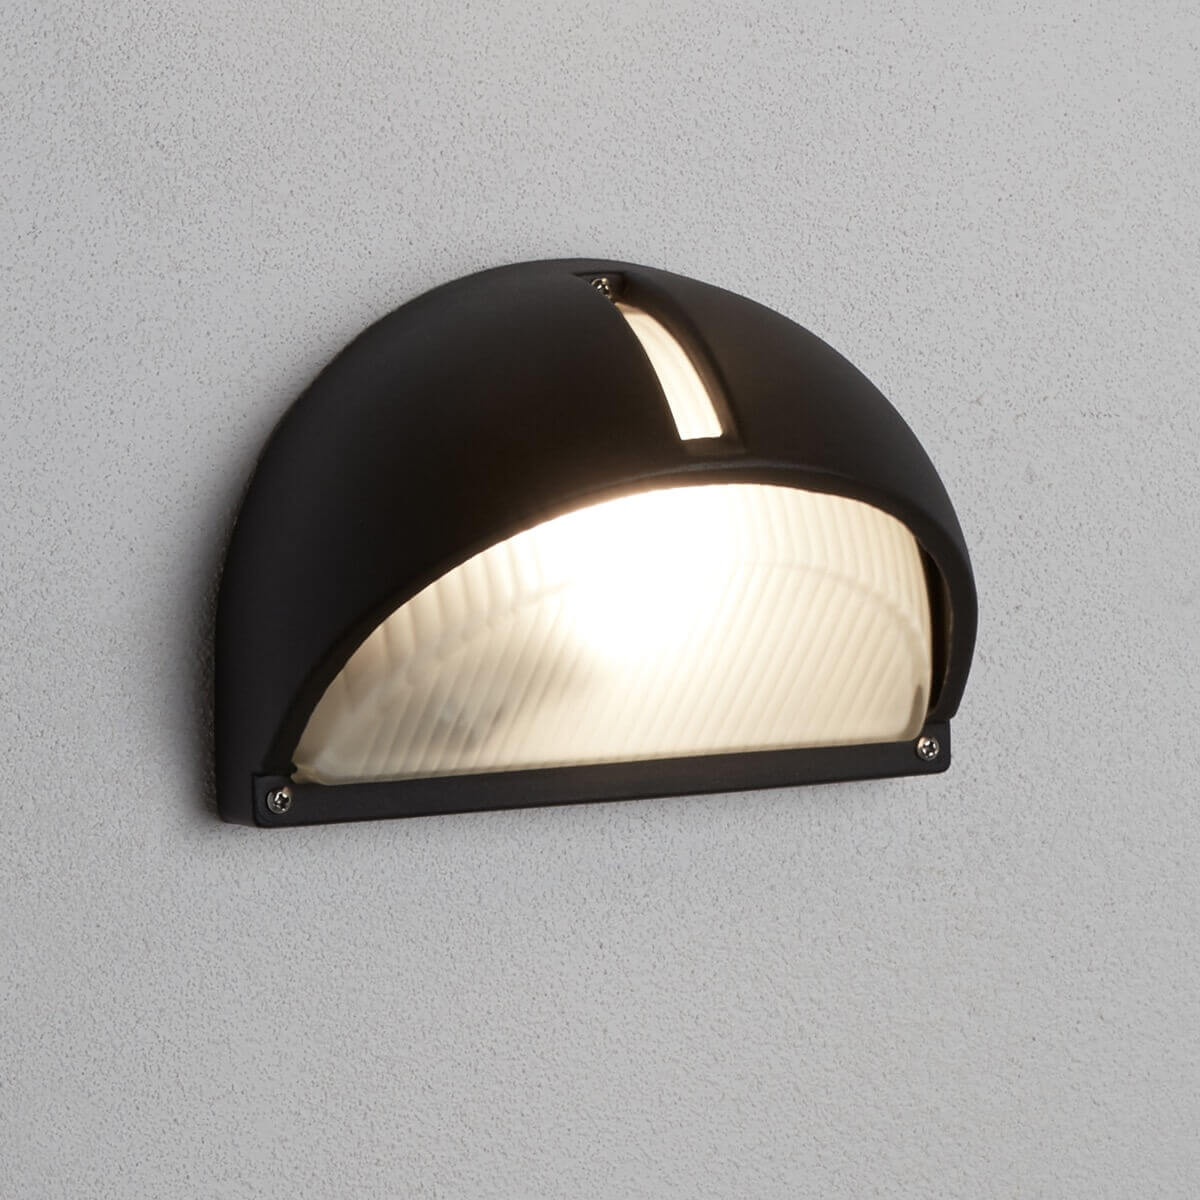 Outdoor Porch Half Moon Wall Bracket Black Frosted Glass Ledlam Lighting